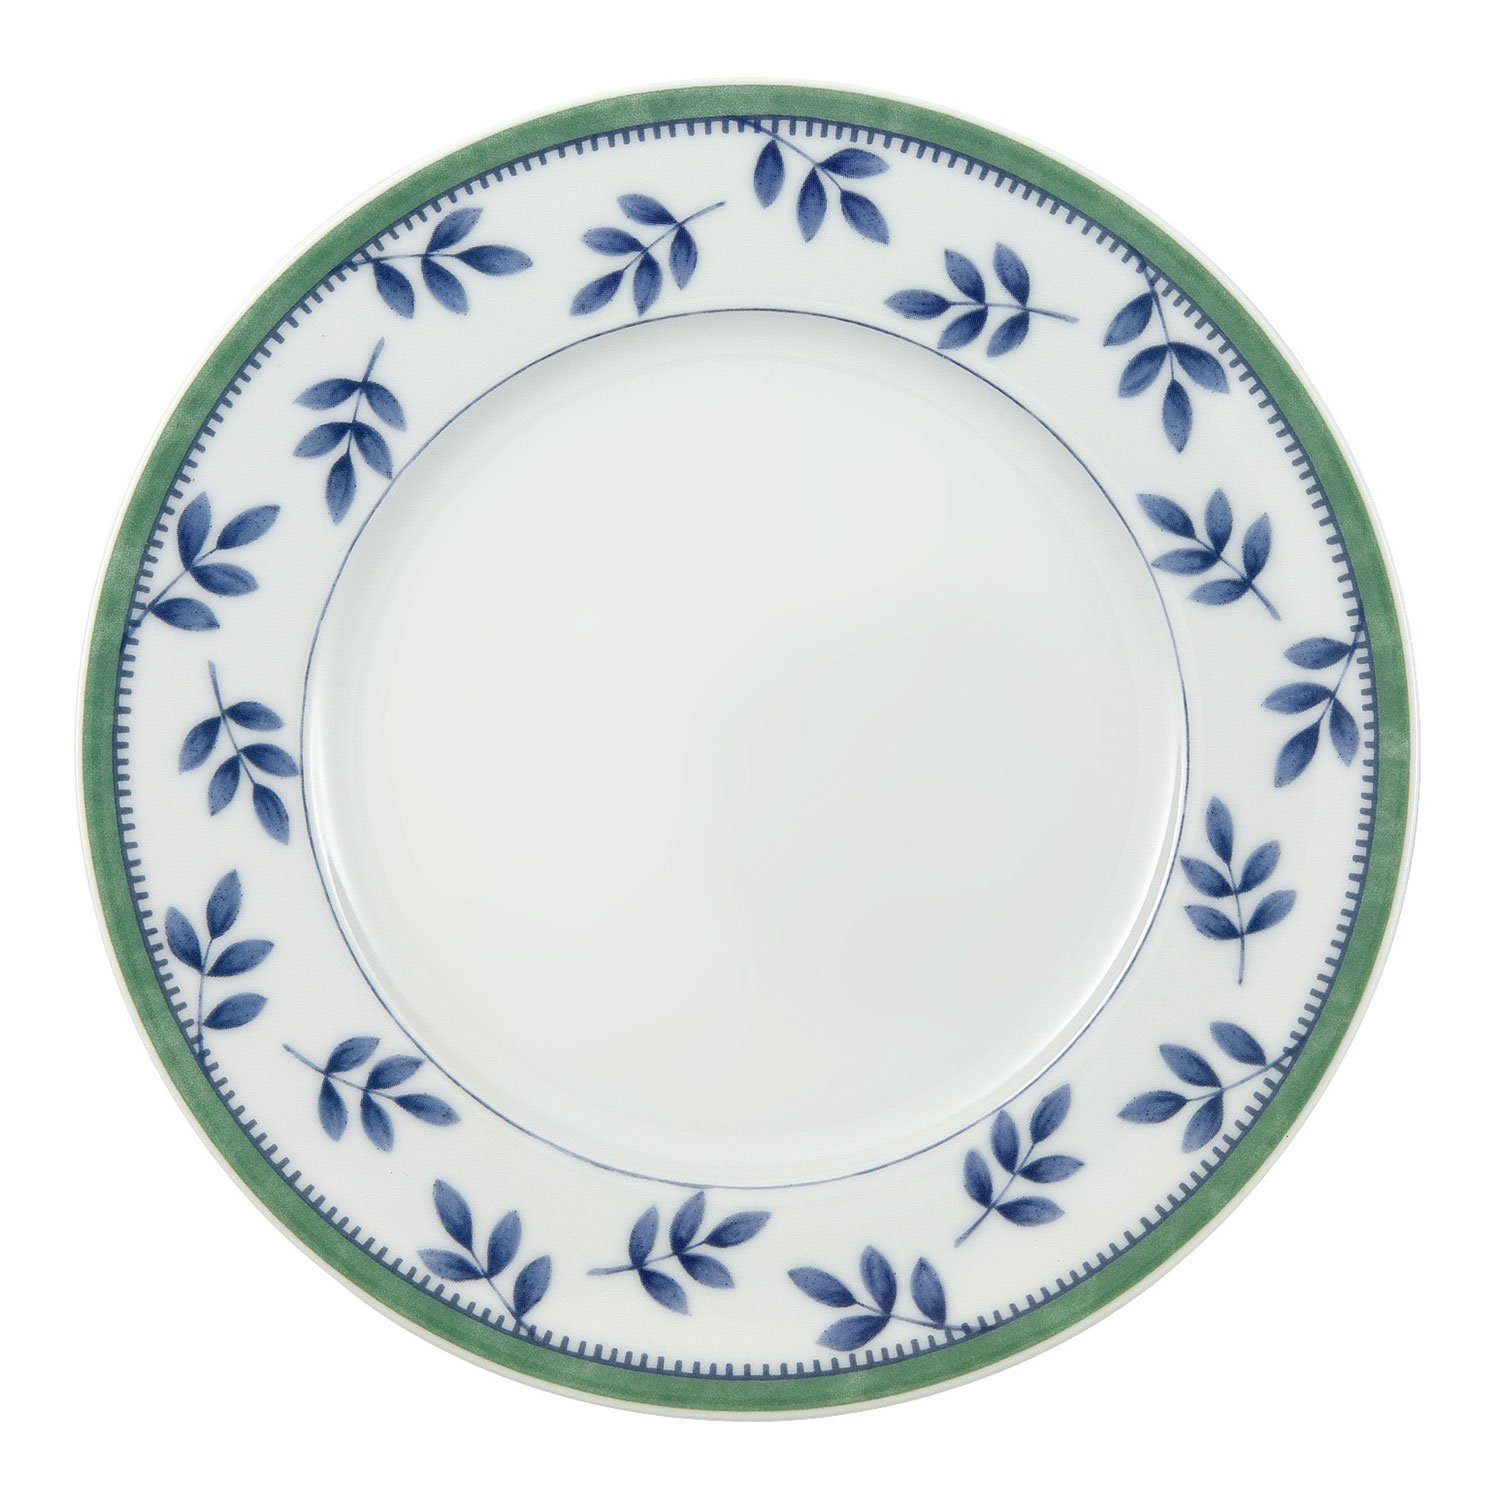 Villeroy & Boch Cordoba Bread and Butter Plate 1026972660